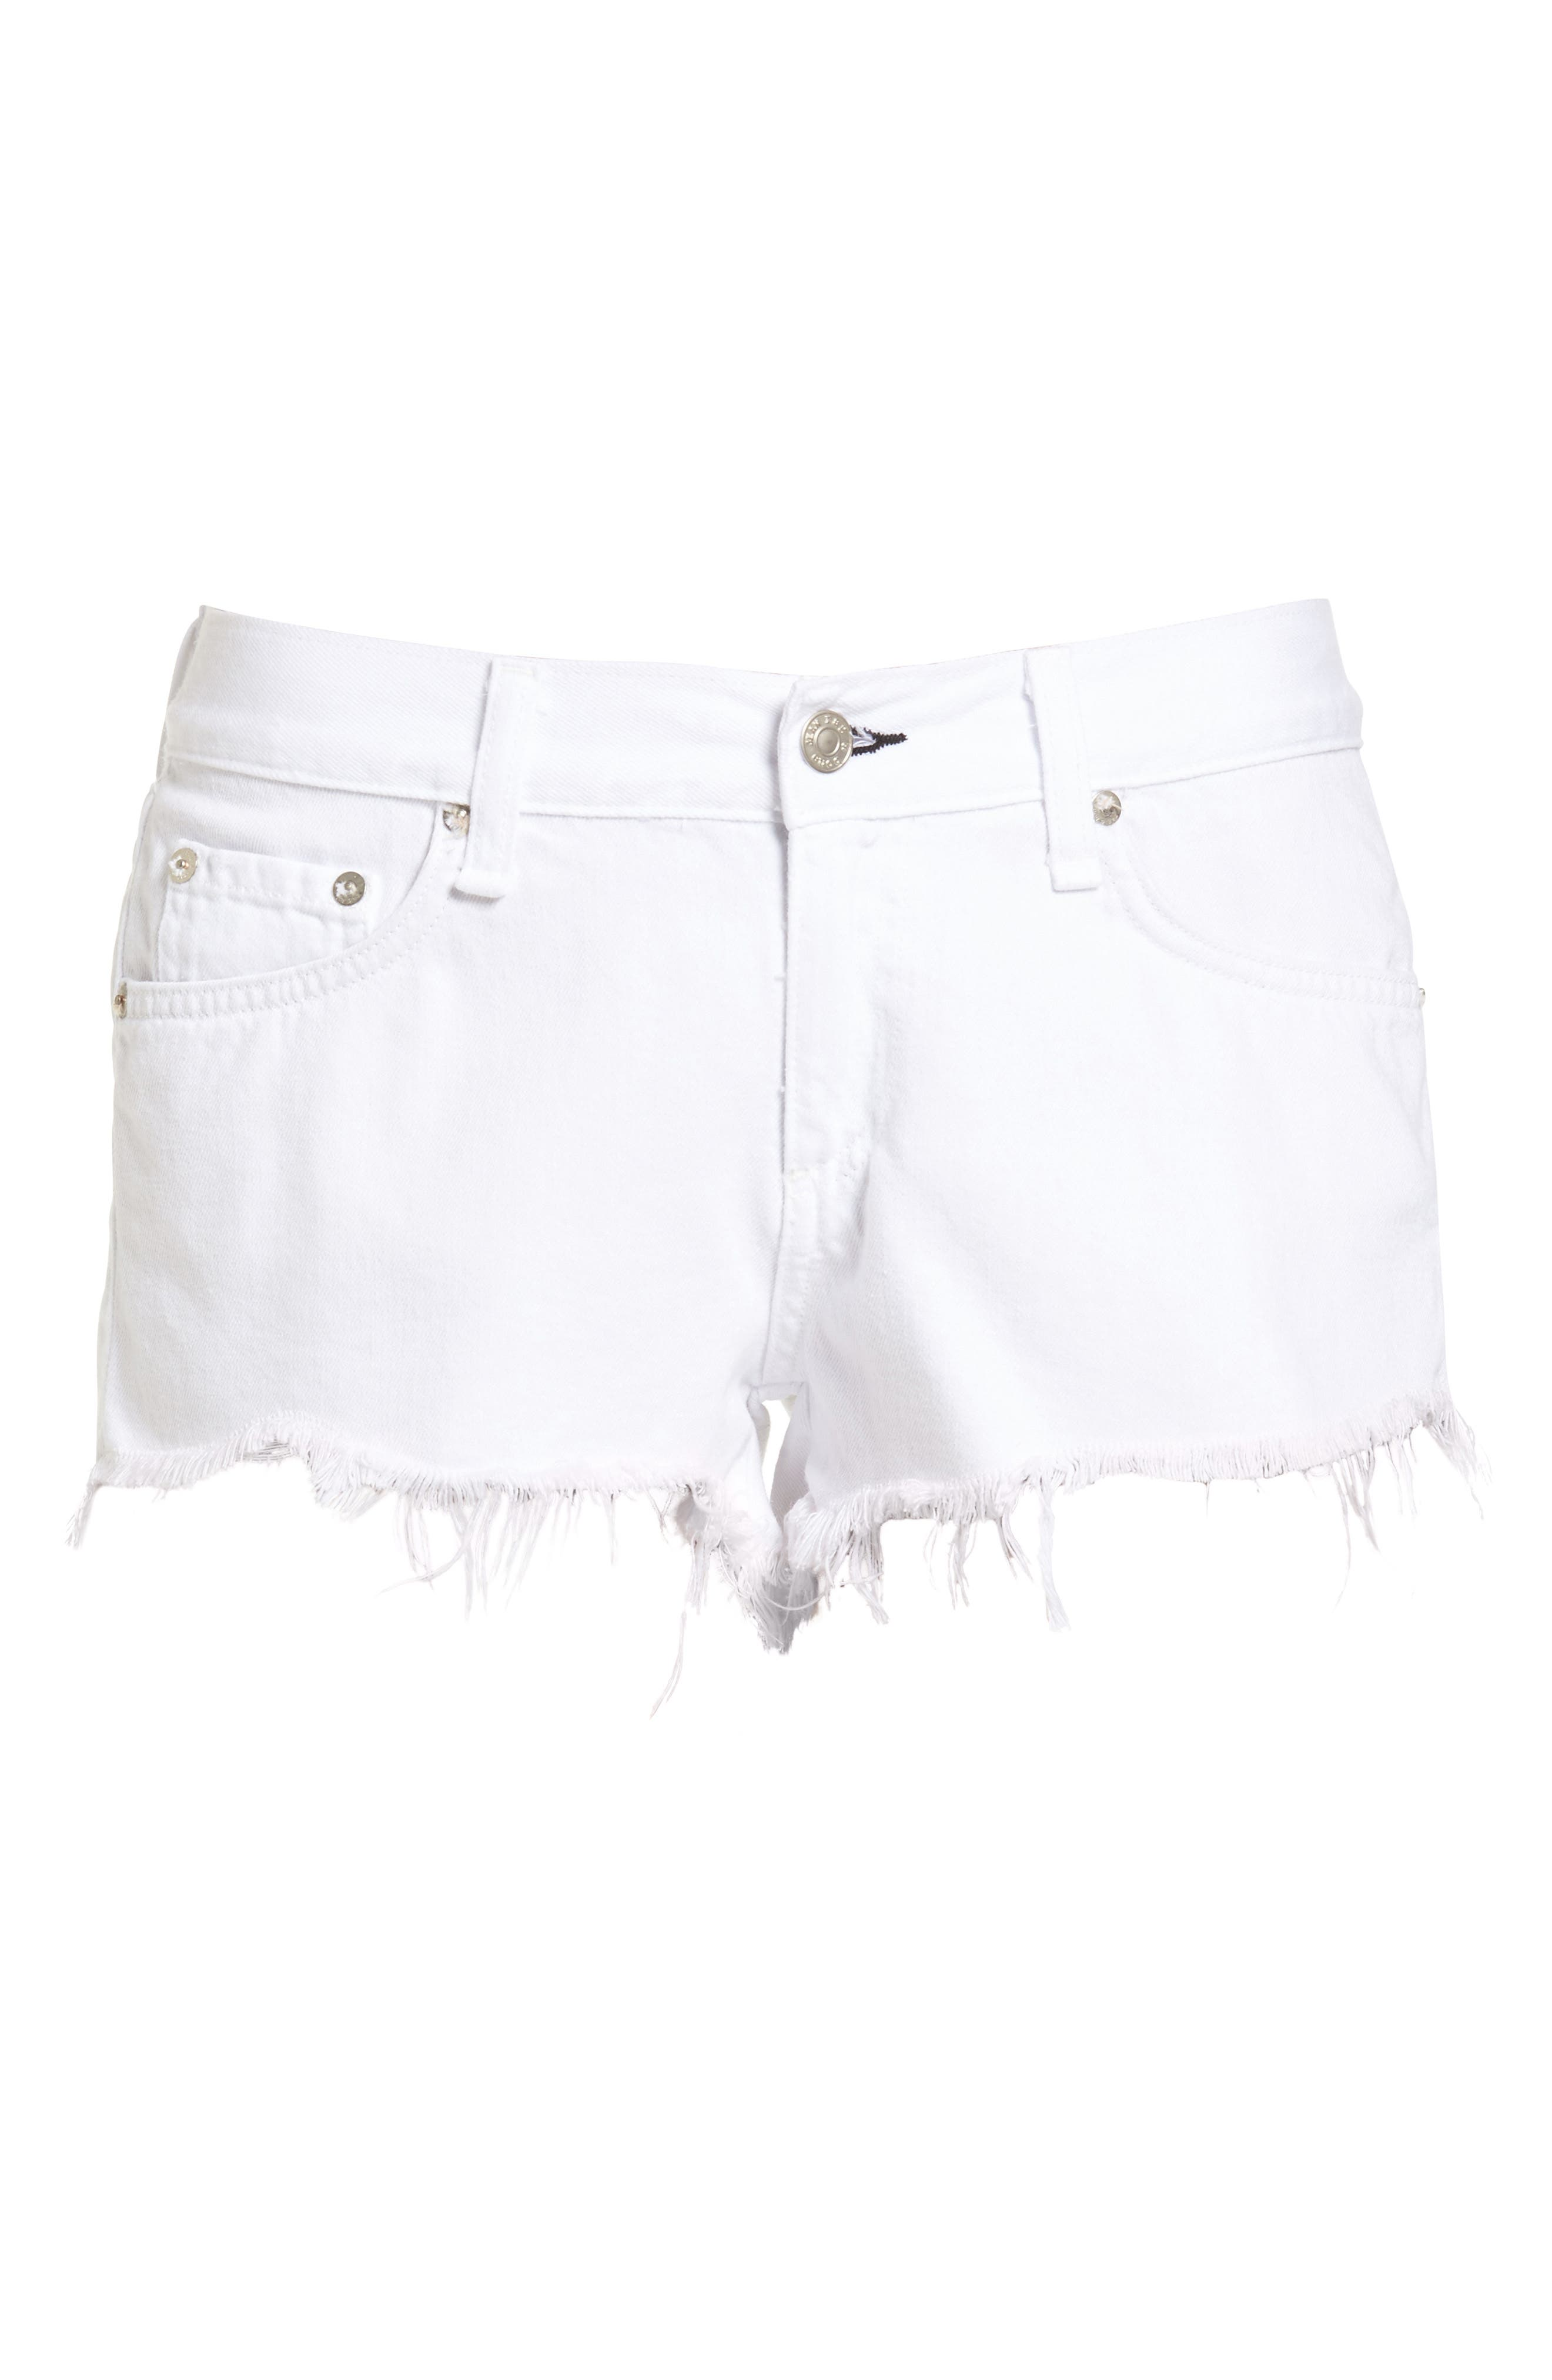 Ripped Cutoff Denim Shorts,                             Alternate thumbnail 6, color,                             126